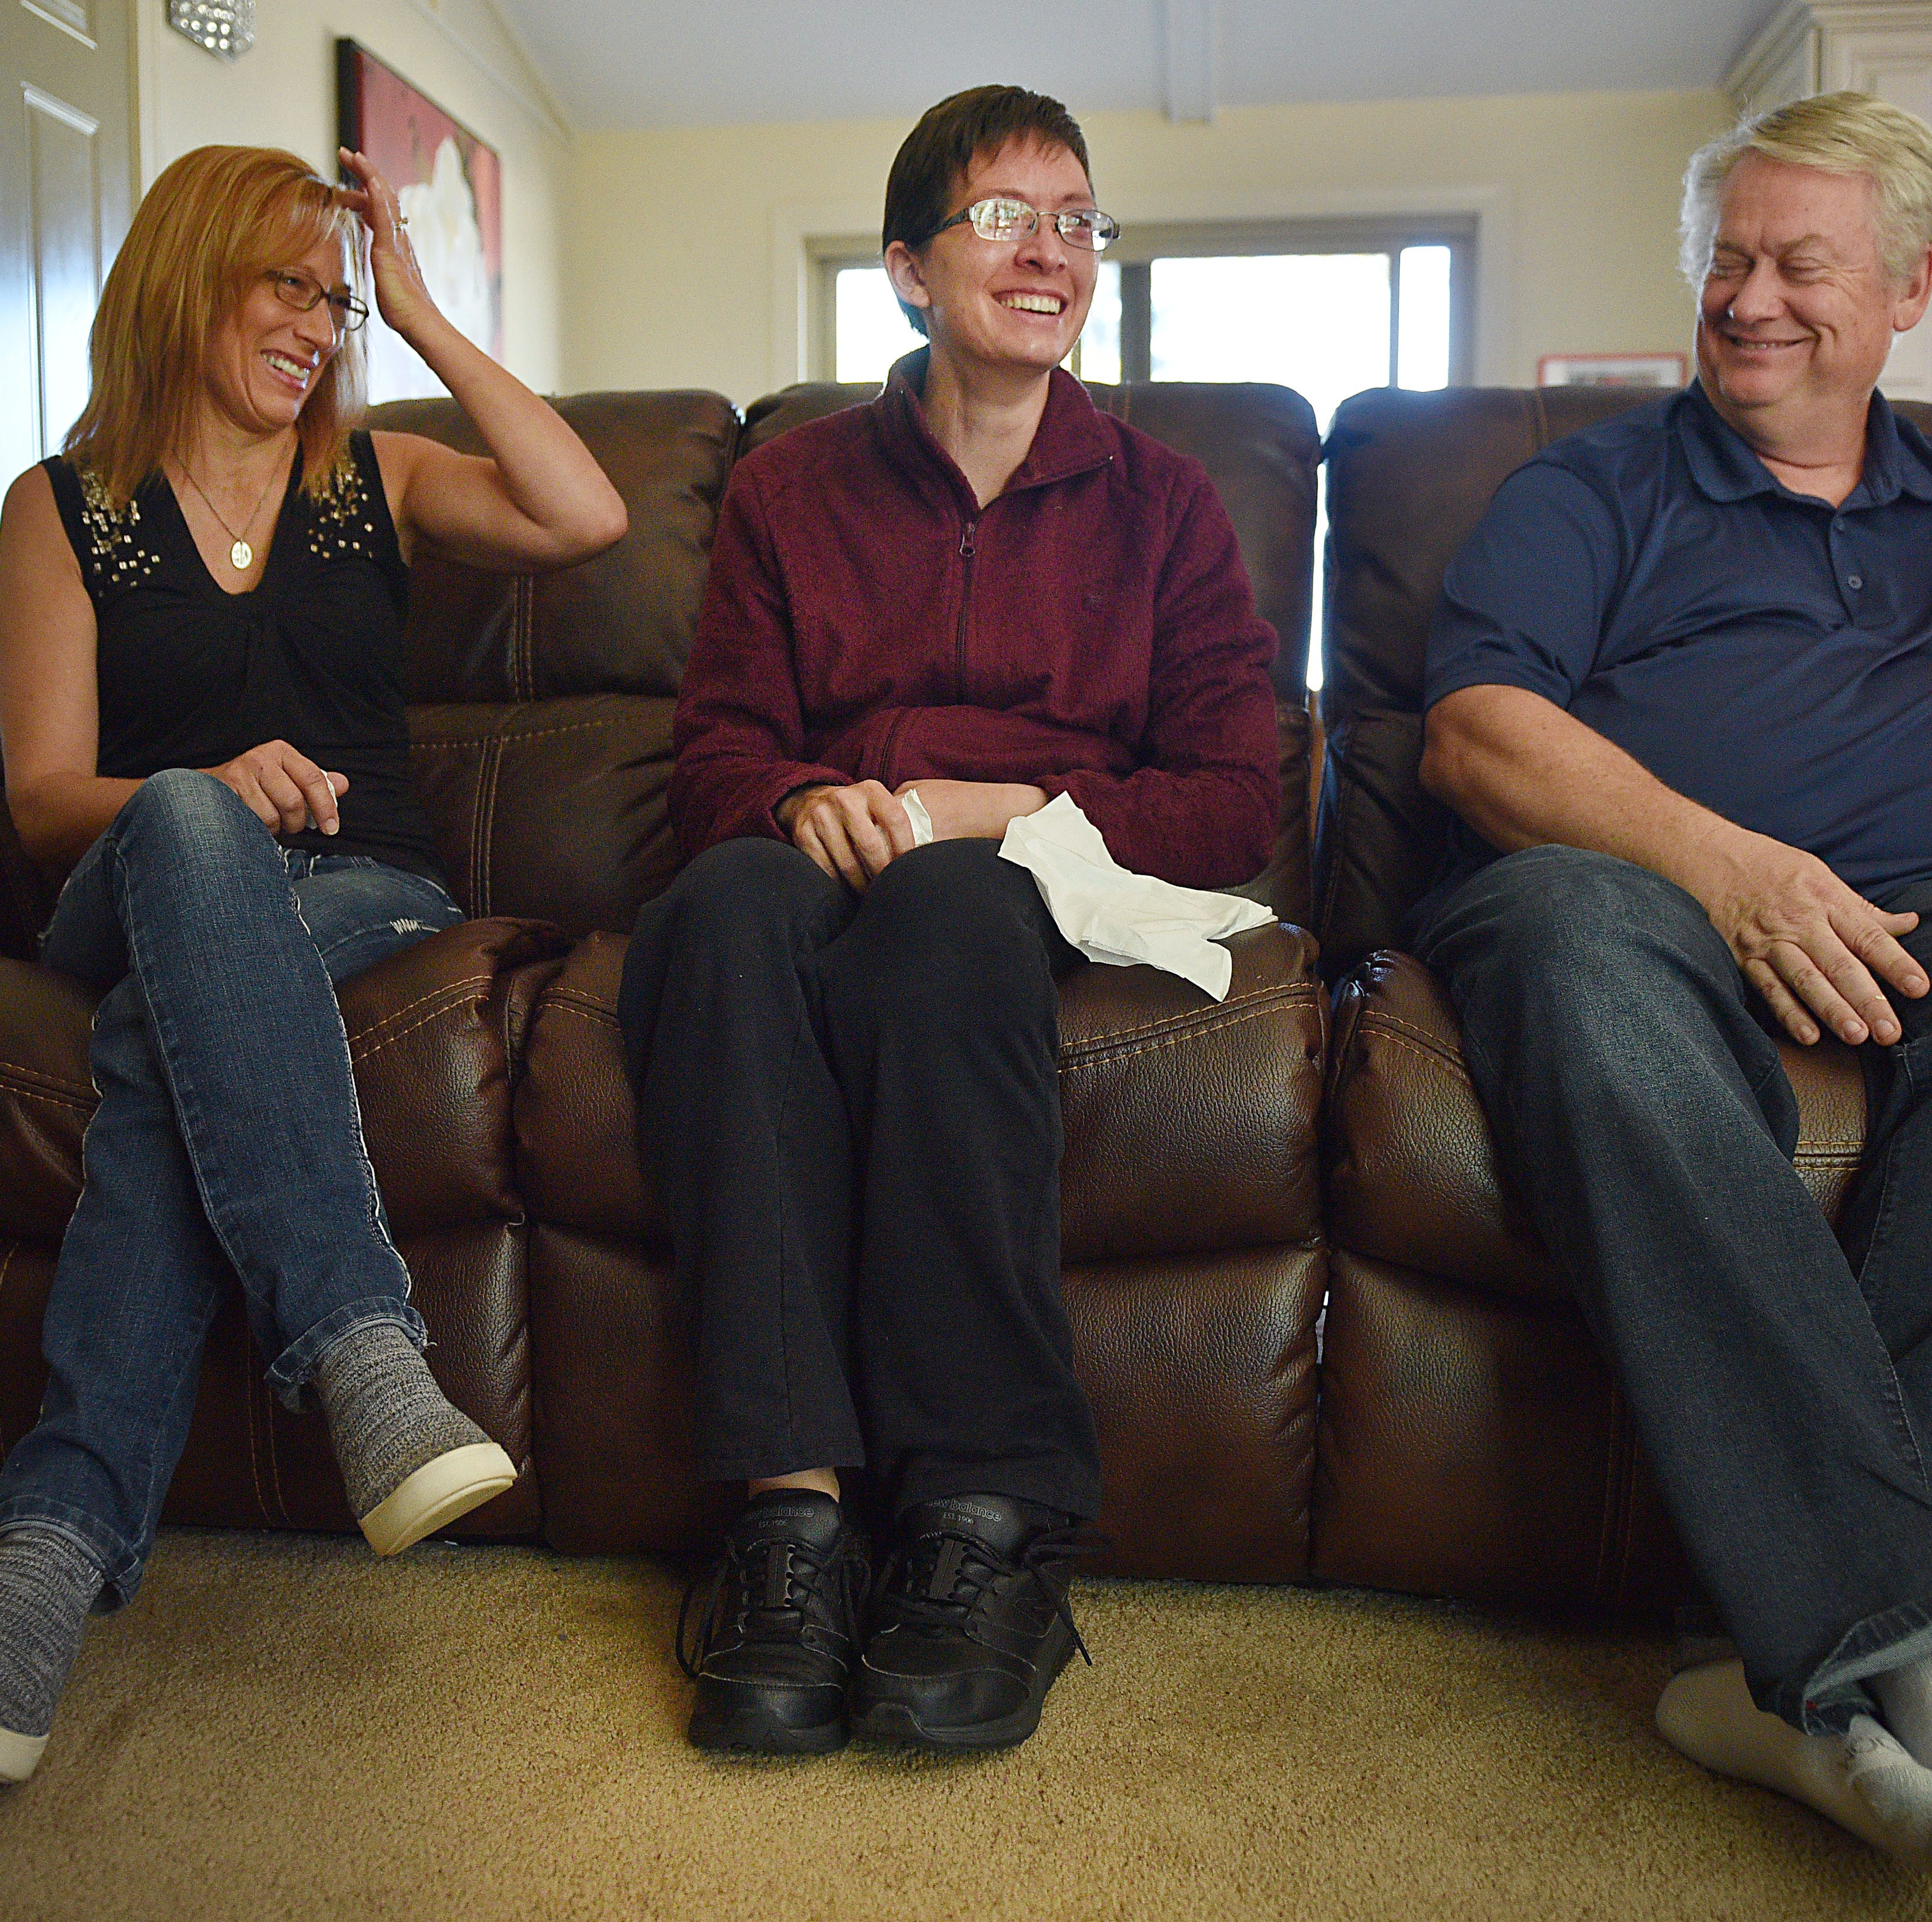 Sioux Falls Christian graduate survives home invasion shooting, finds forgiveness